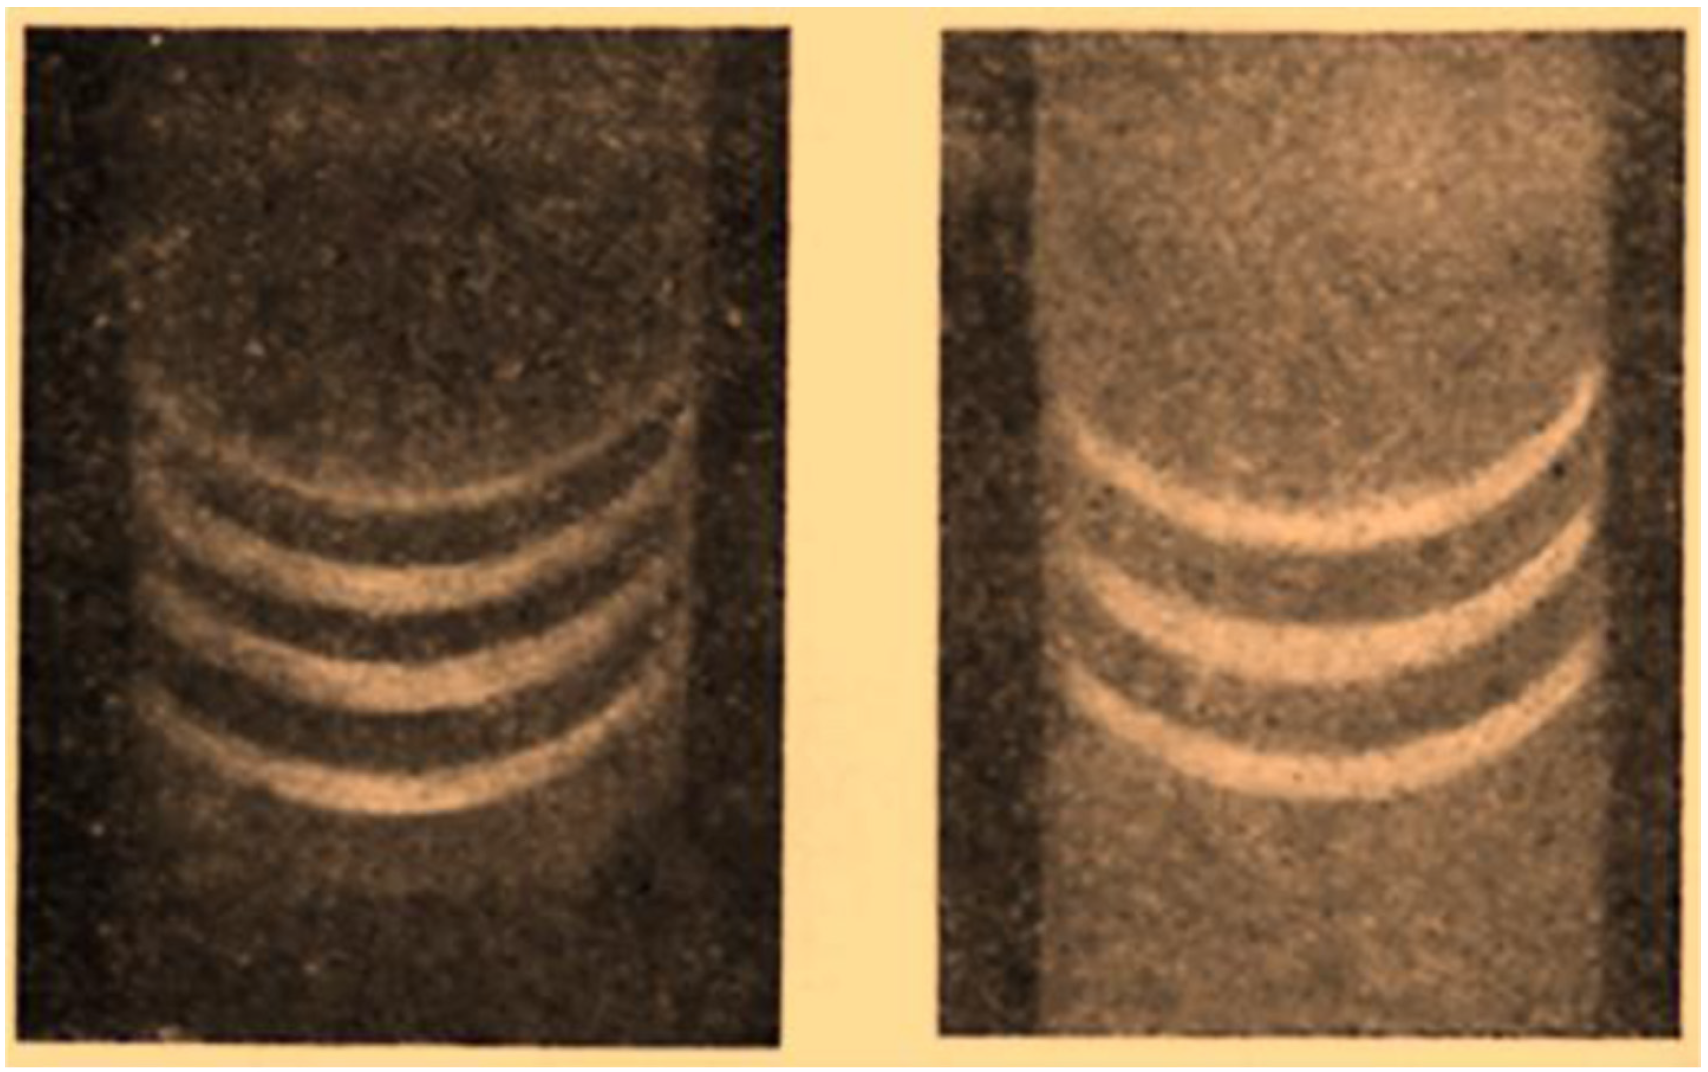 Fluxtrol - HES 2016 Striation Effect in Induction Heating: Myths and Reality - Figure 1